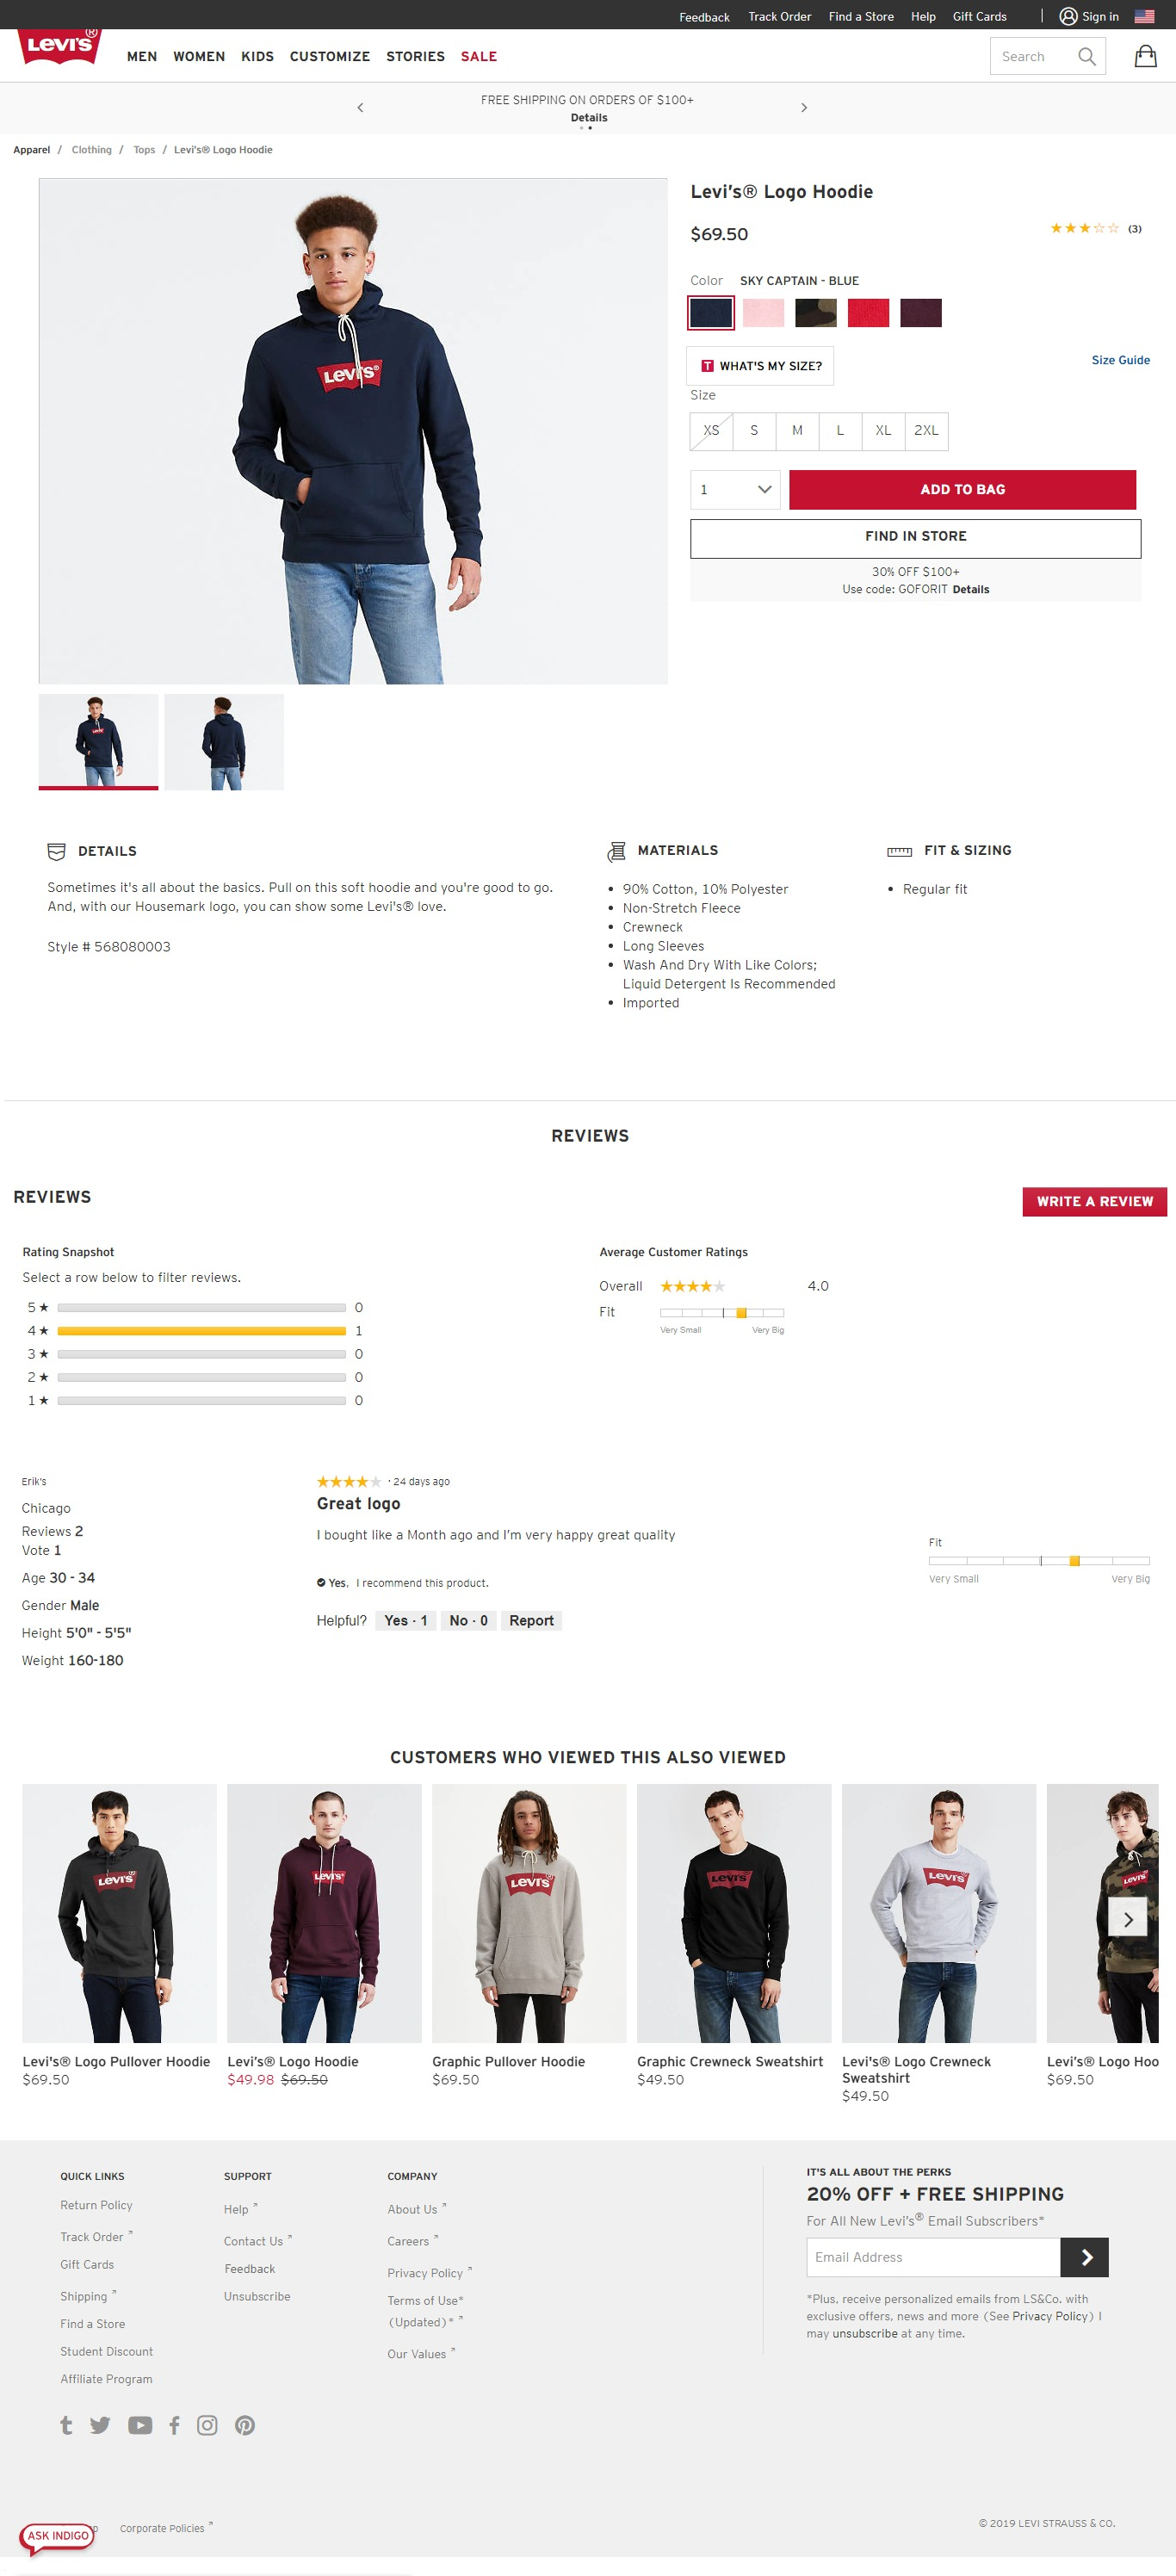 Product Page Best Practices by Levi's